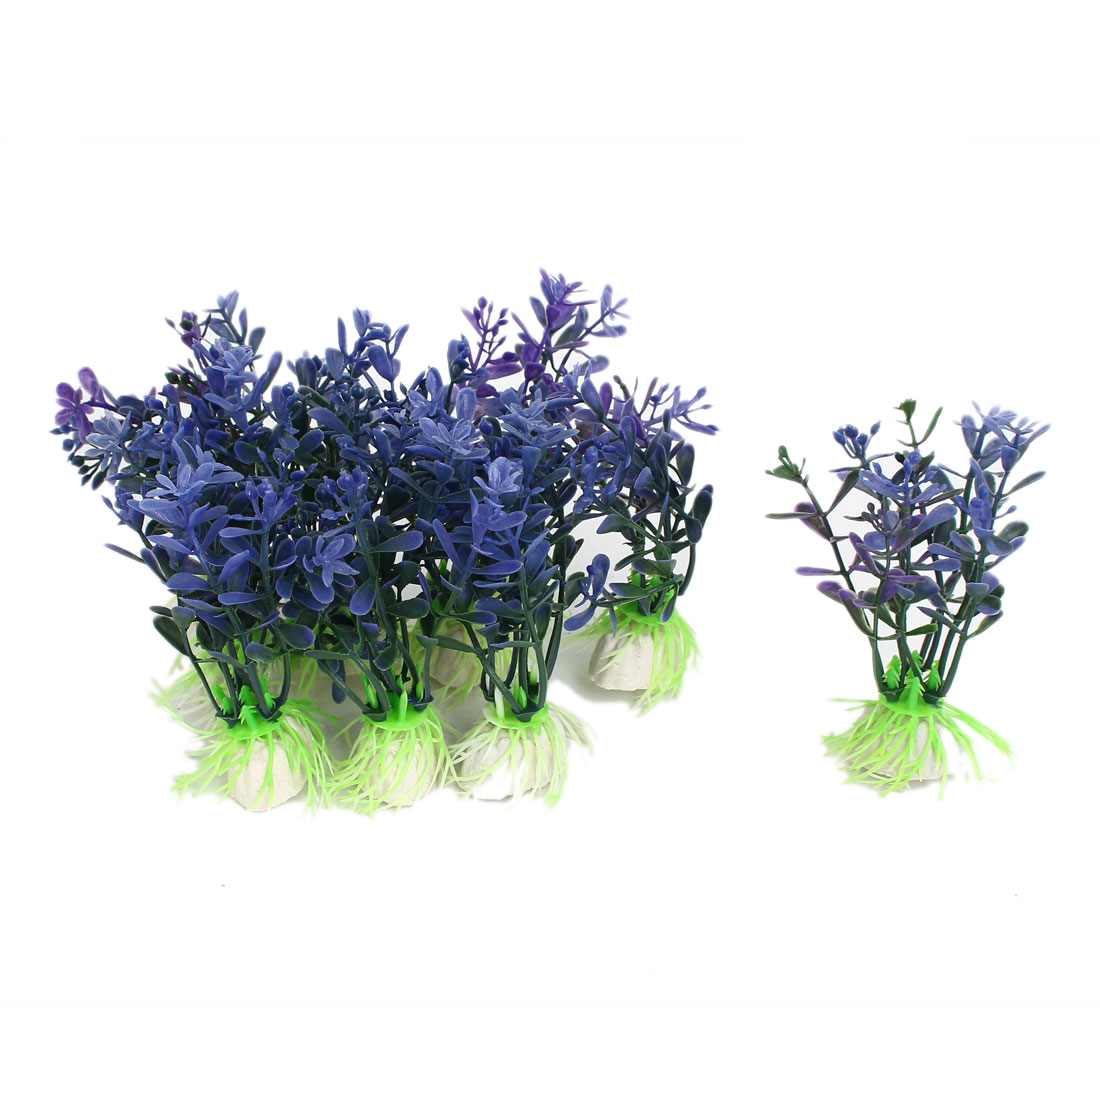 Aquarium Fish Tank Simulated Fake Water Plant Grass Decor Ornament Purple 10Pcs